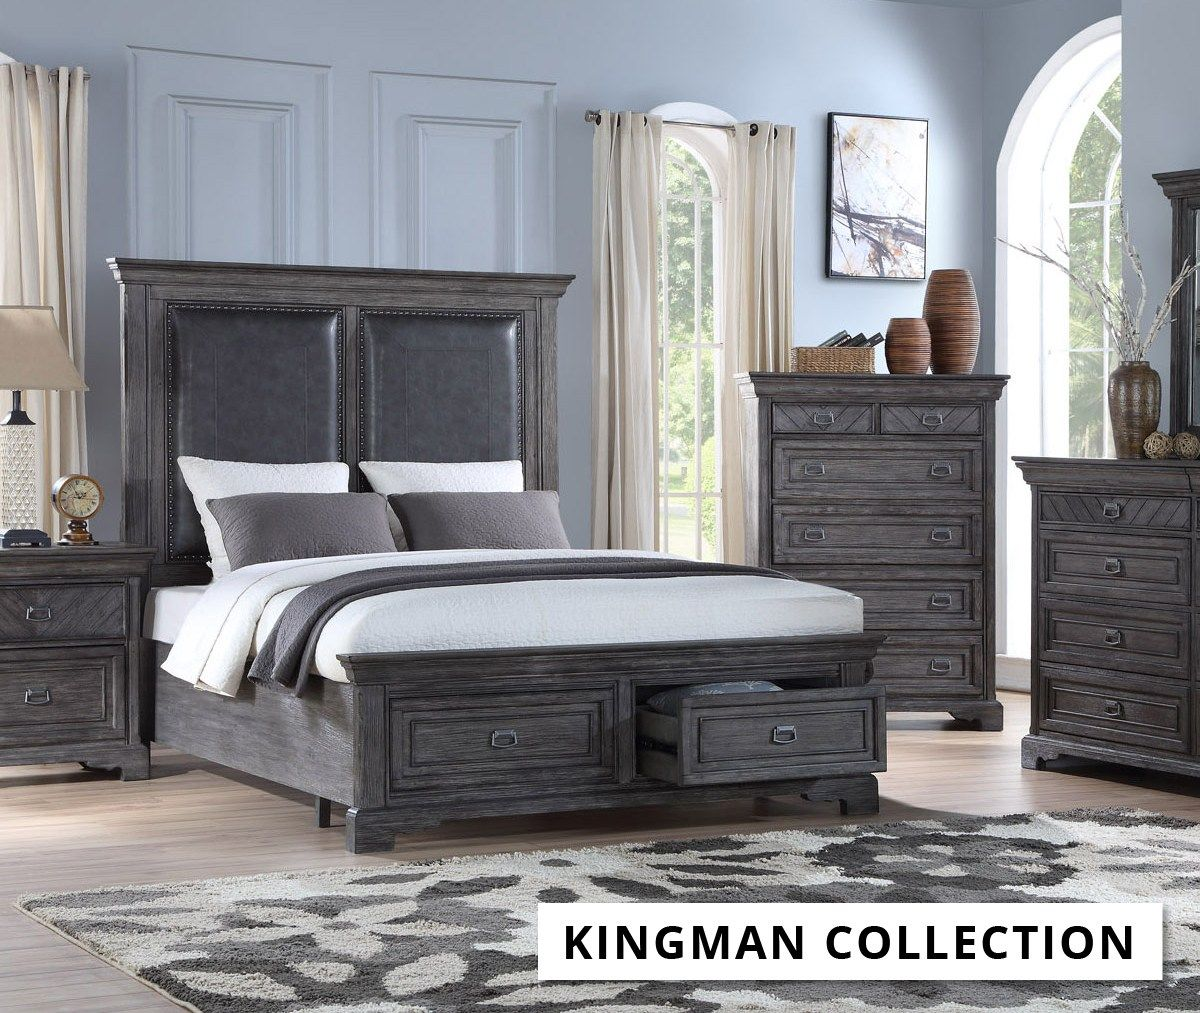 Bedroom Furniture Interior Design Modern Style Bedroom Rotmans